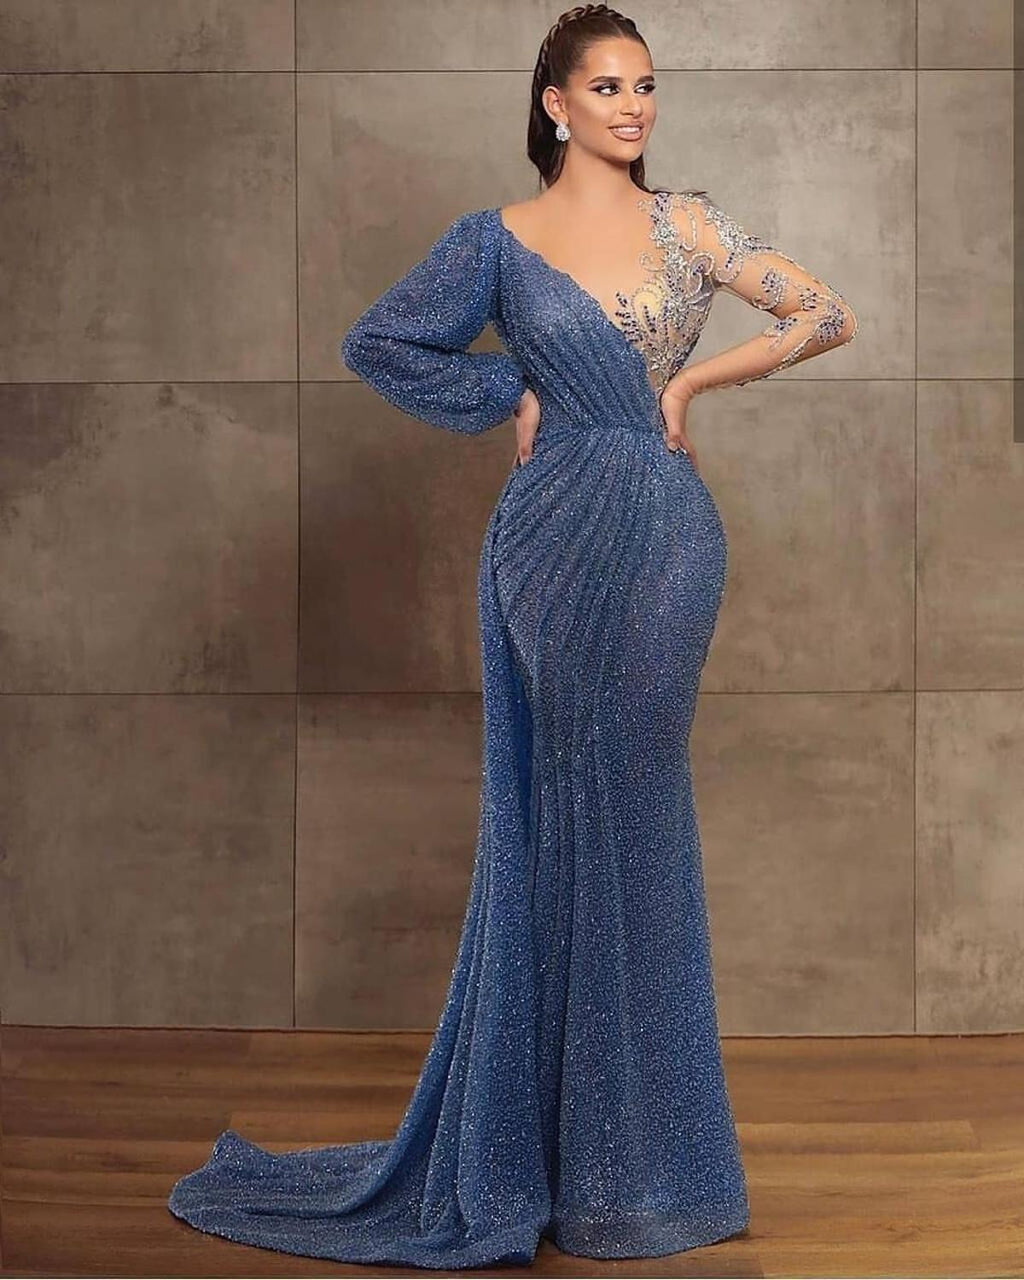 Party special occasion gown robe de soiree vestidos formales elegant bling bling beads evening dresses blue gown for parties - LiveTrendsX